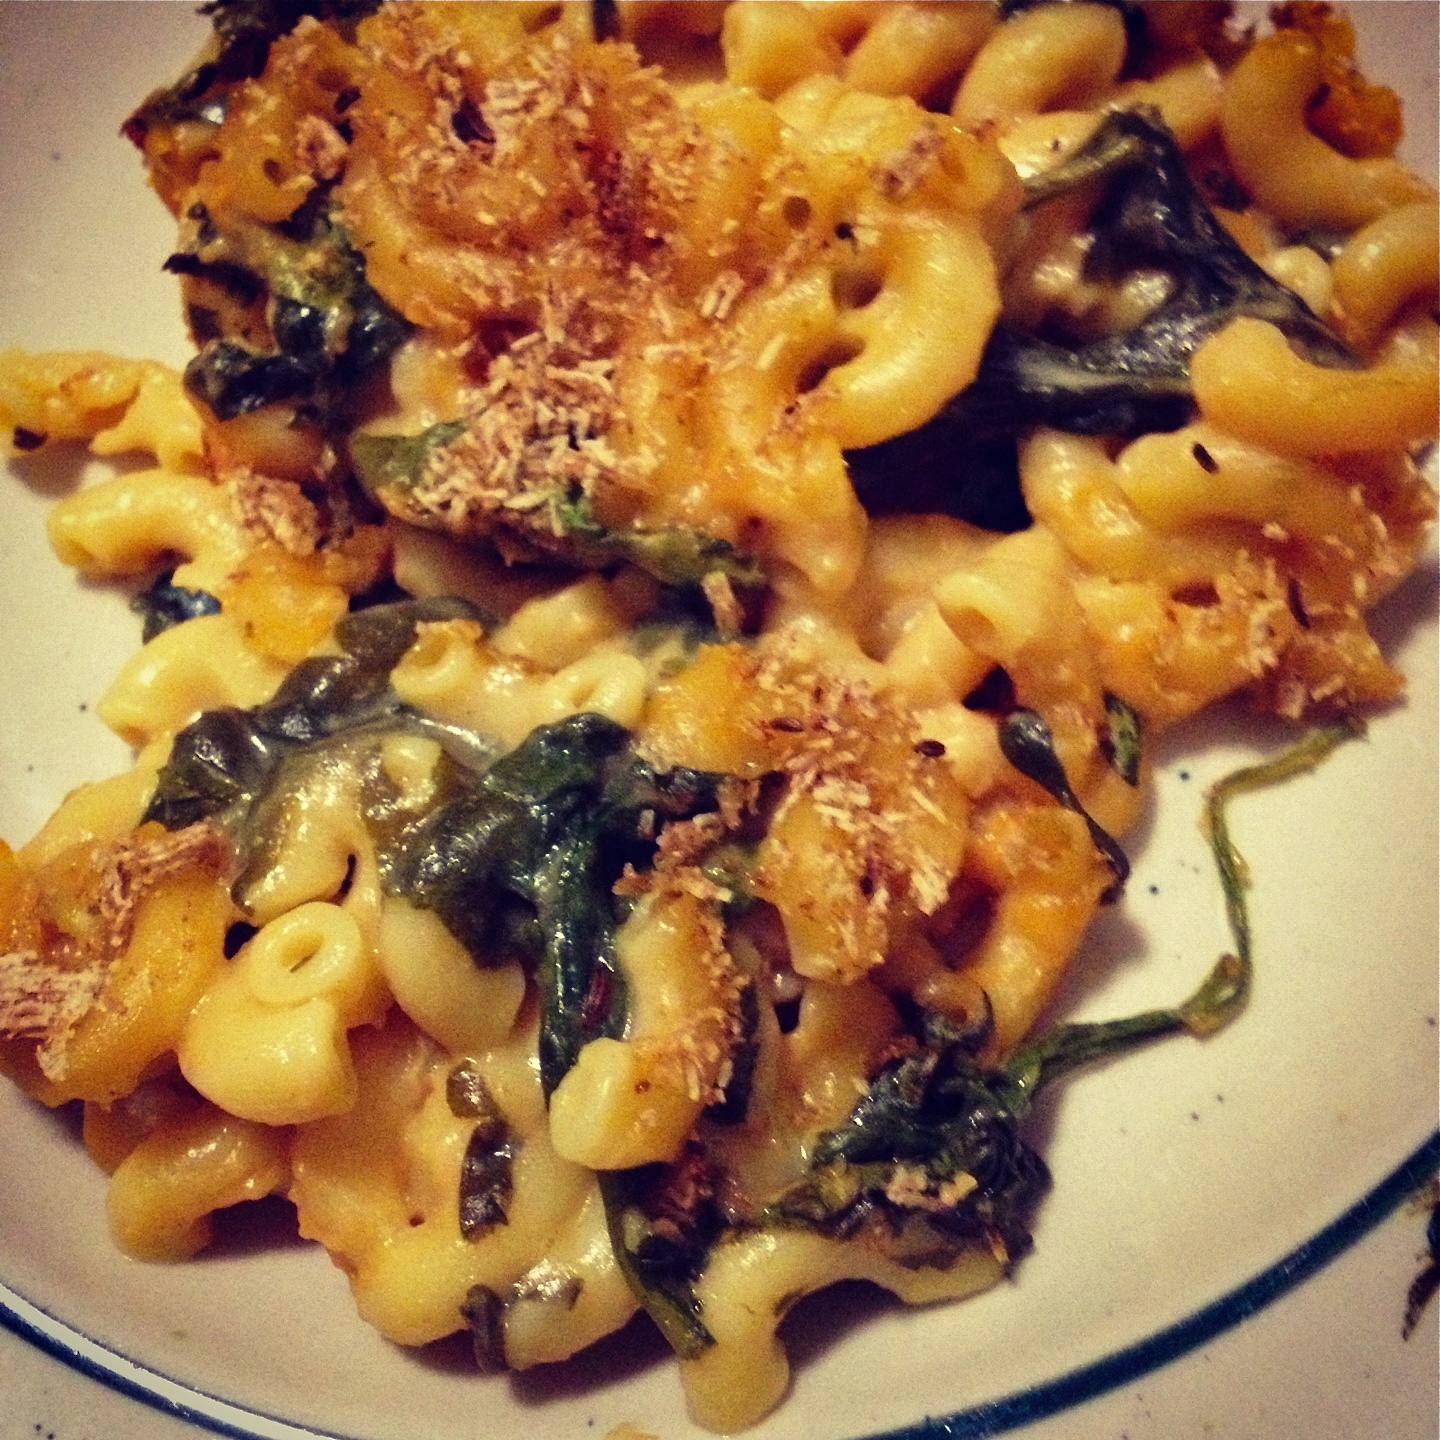 ... pasta dish to rear in the season. This baked pasta casserole is almost